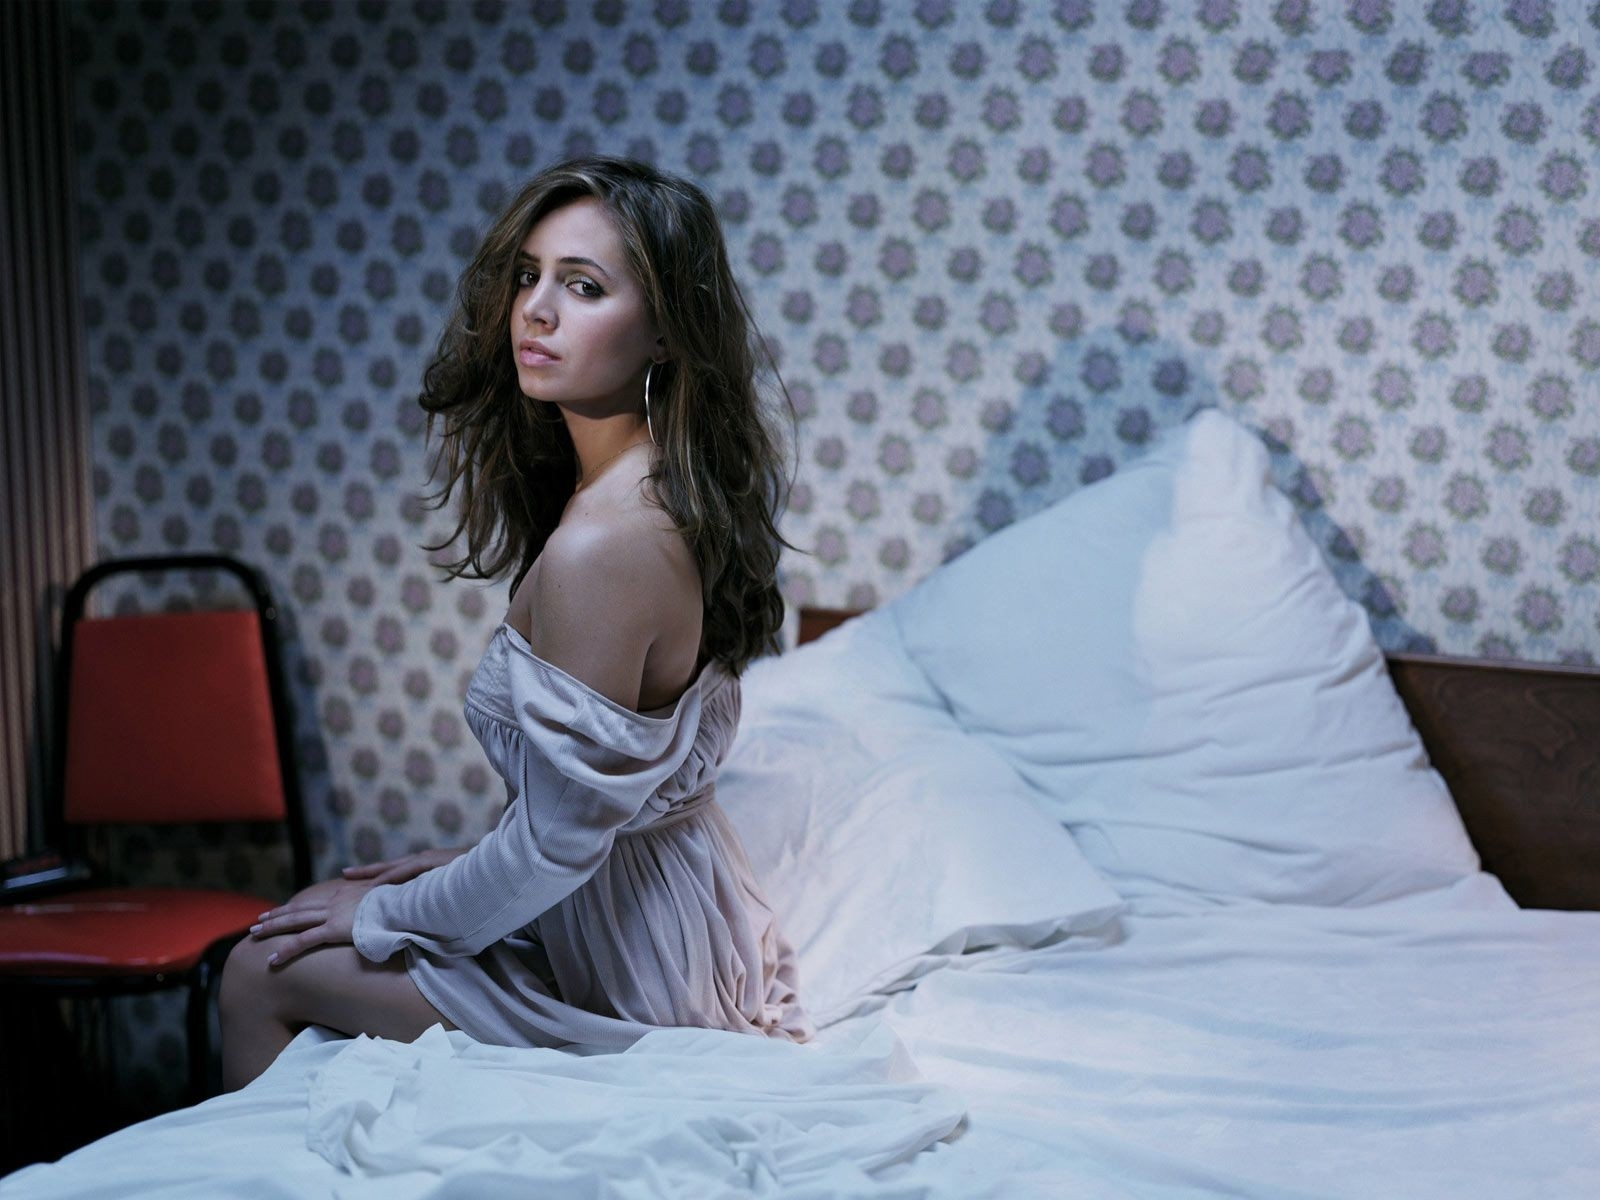 Wallpaper di Eliza Dushku a letto